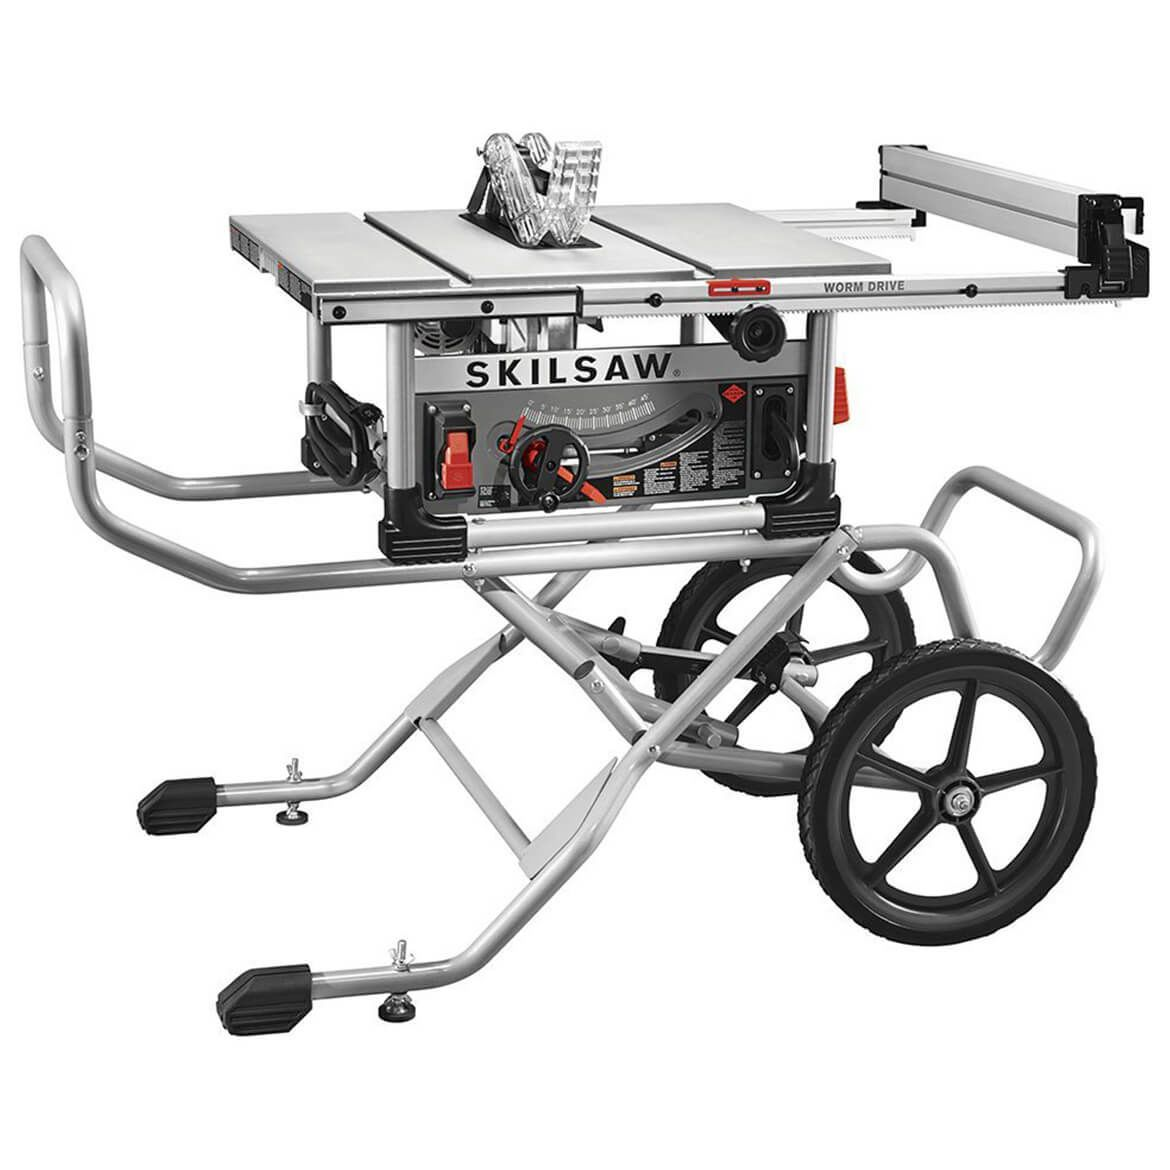 Skilsaw Spt99 11 10 In Heavy Duty Worm Drive Table Saw With Stand Skil Saw Best Table Saw Portable Table Saw